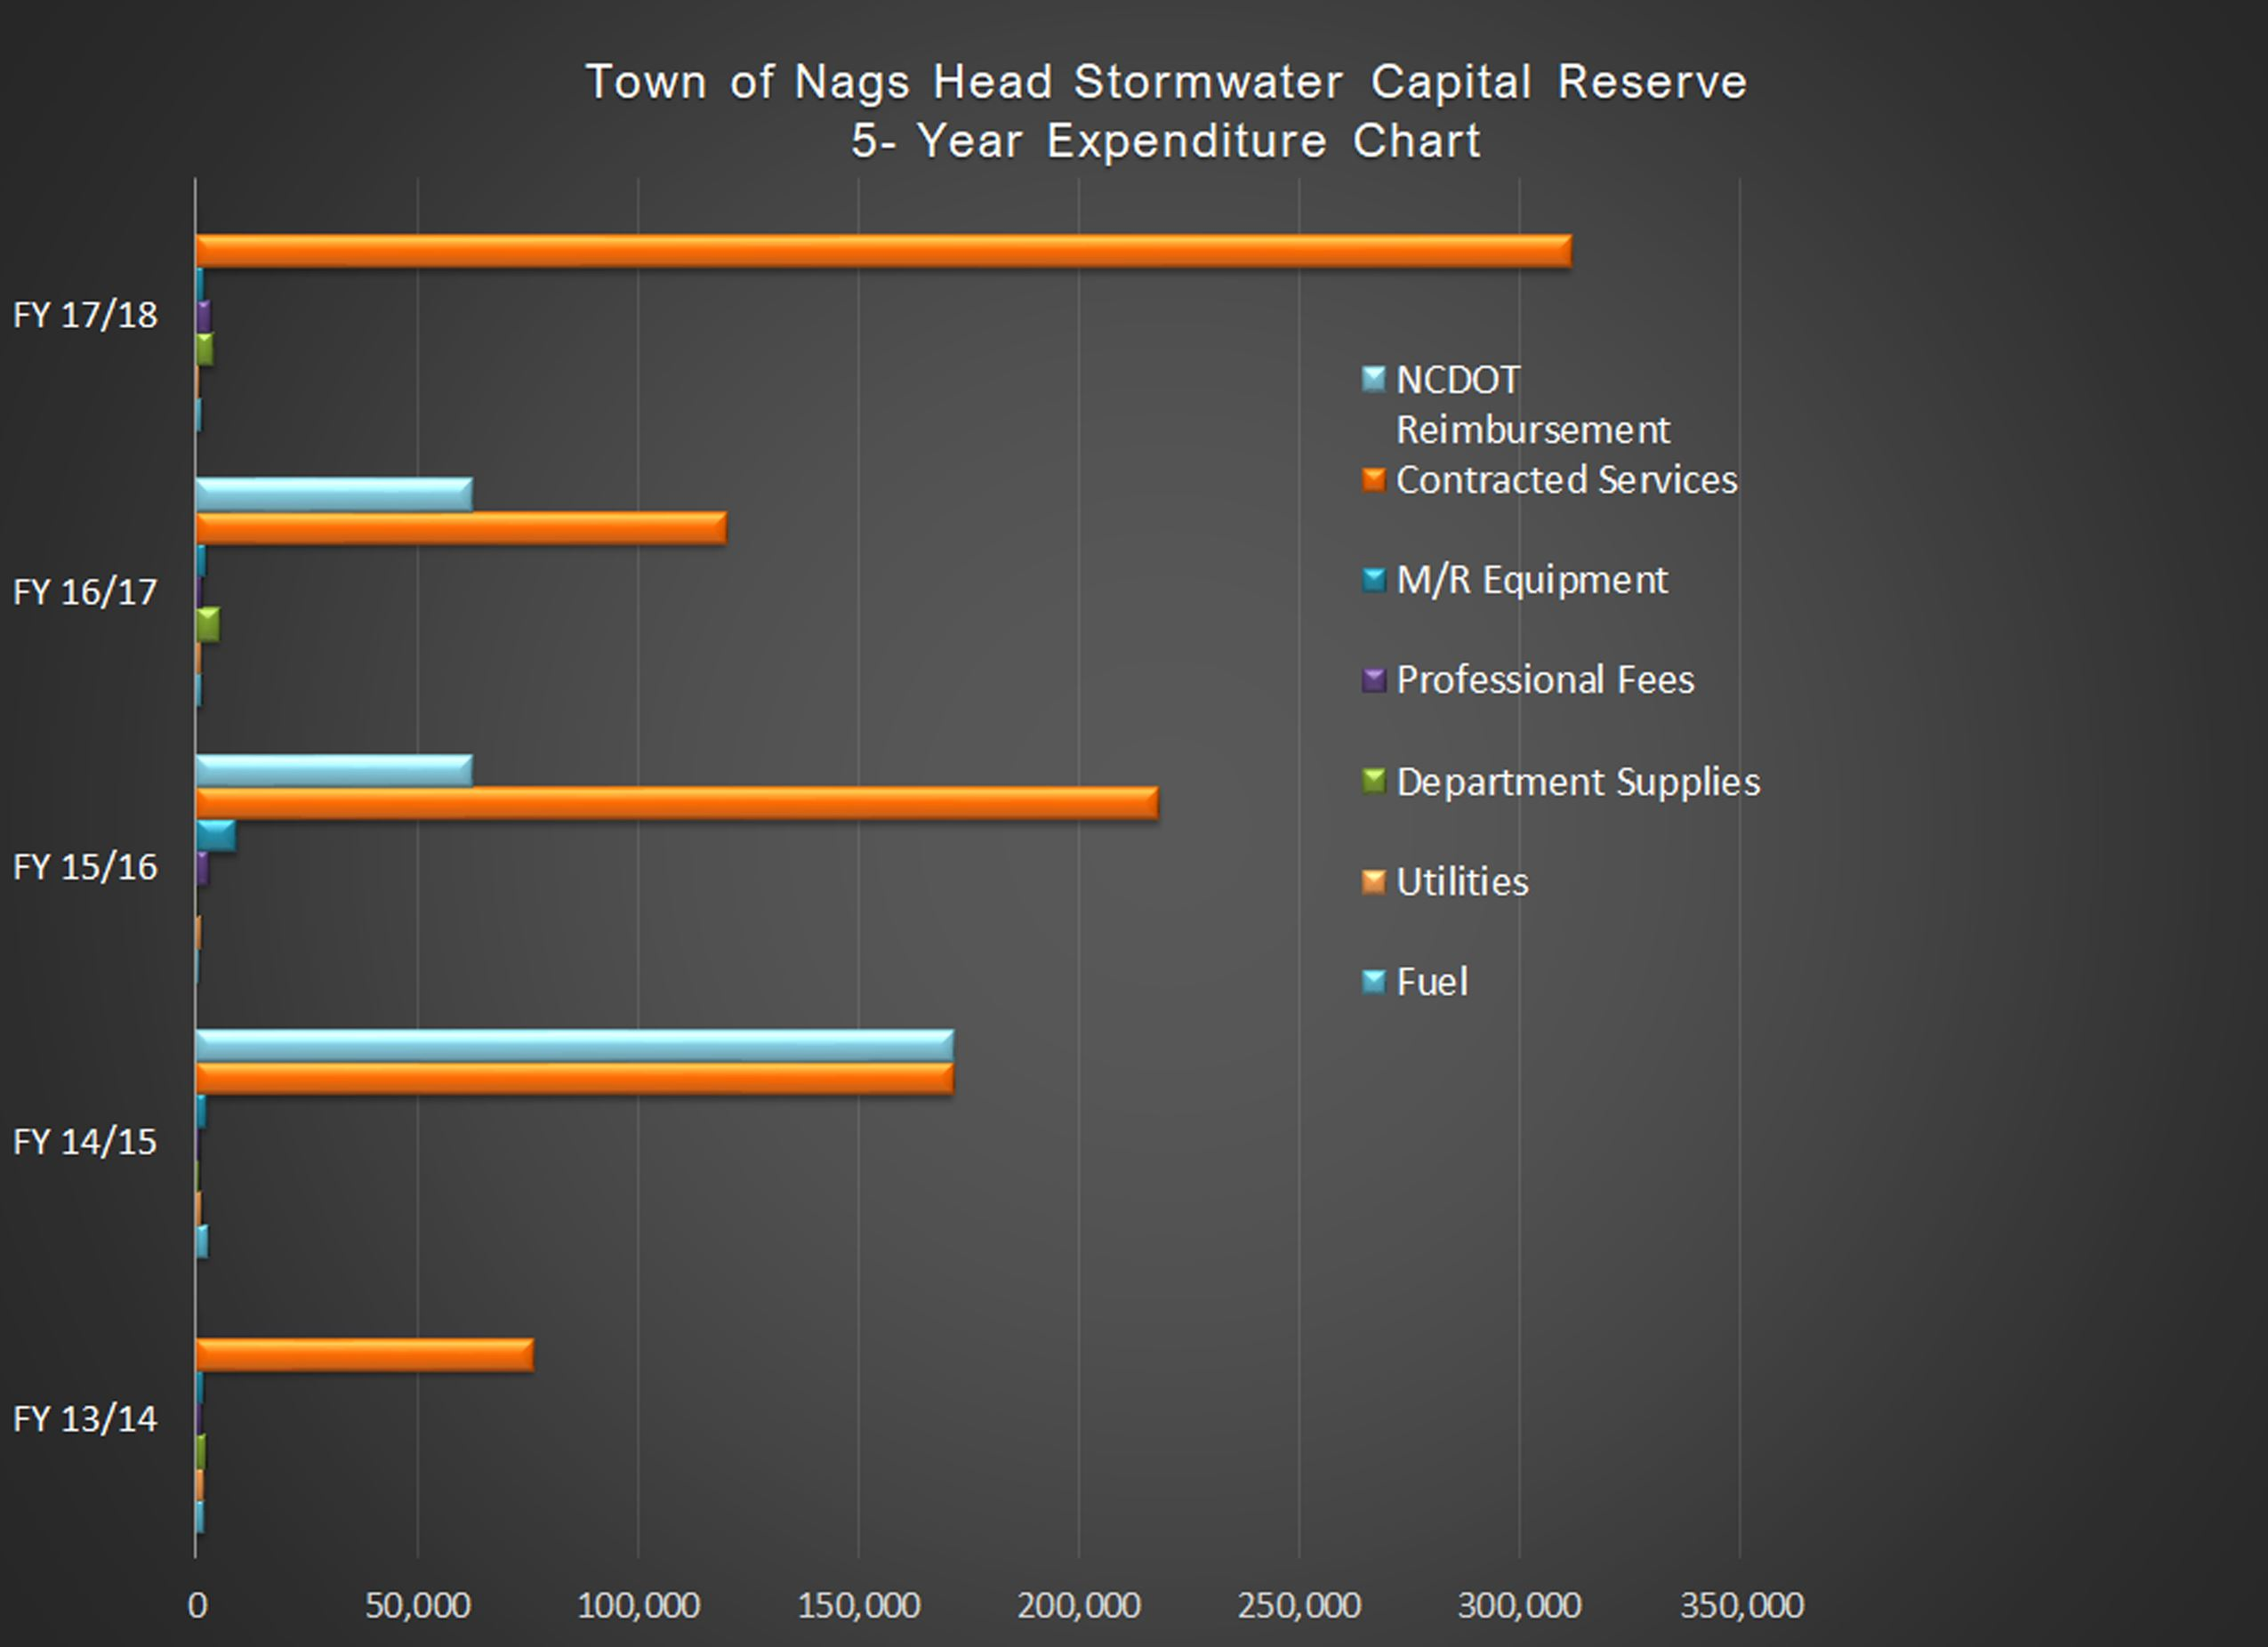 Stormwater Capital  Reserve Five Year Expenditure Plan